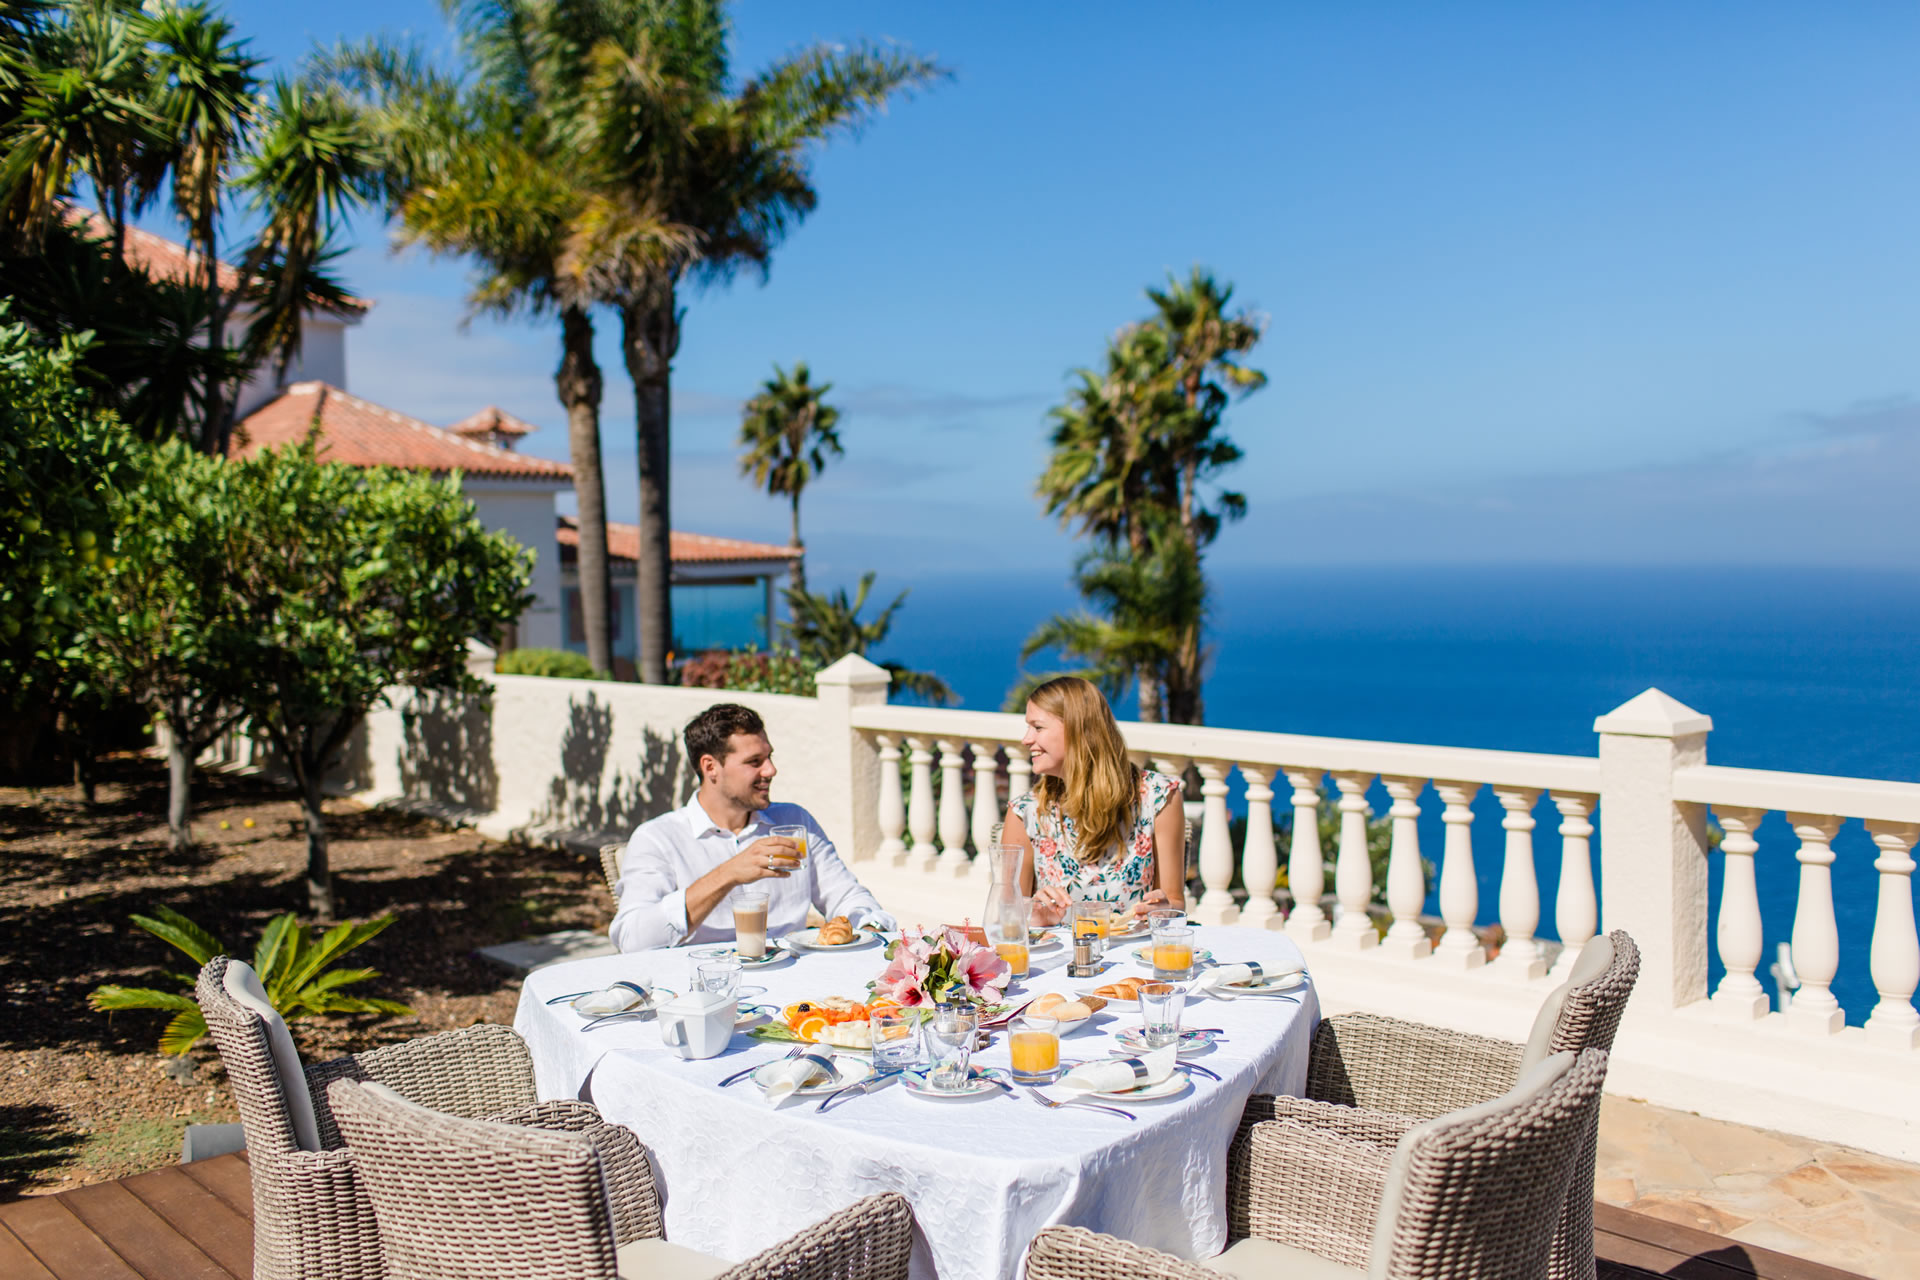 Breakfast by the sea with views of Tenerife